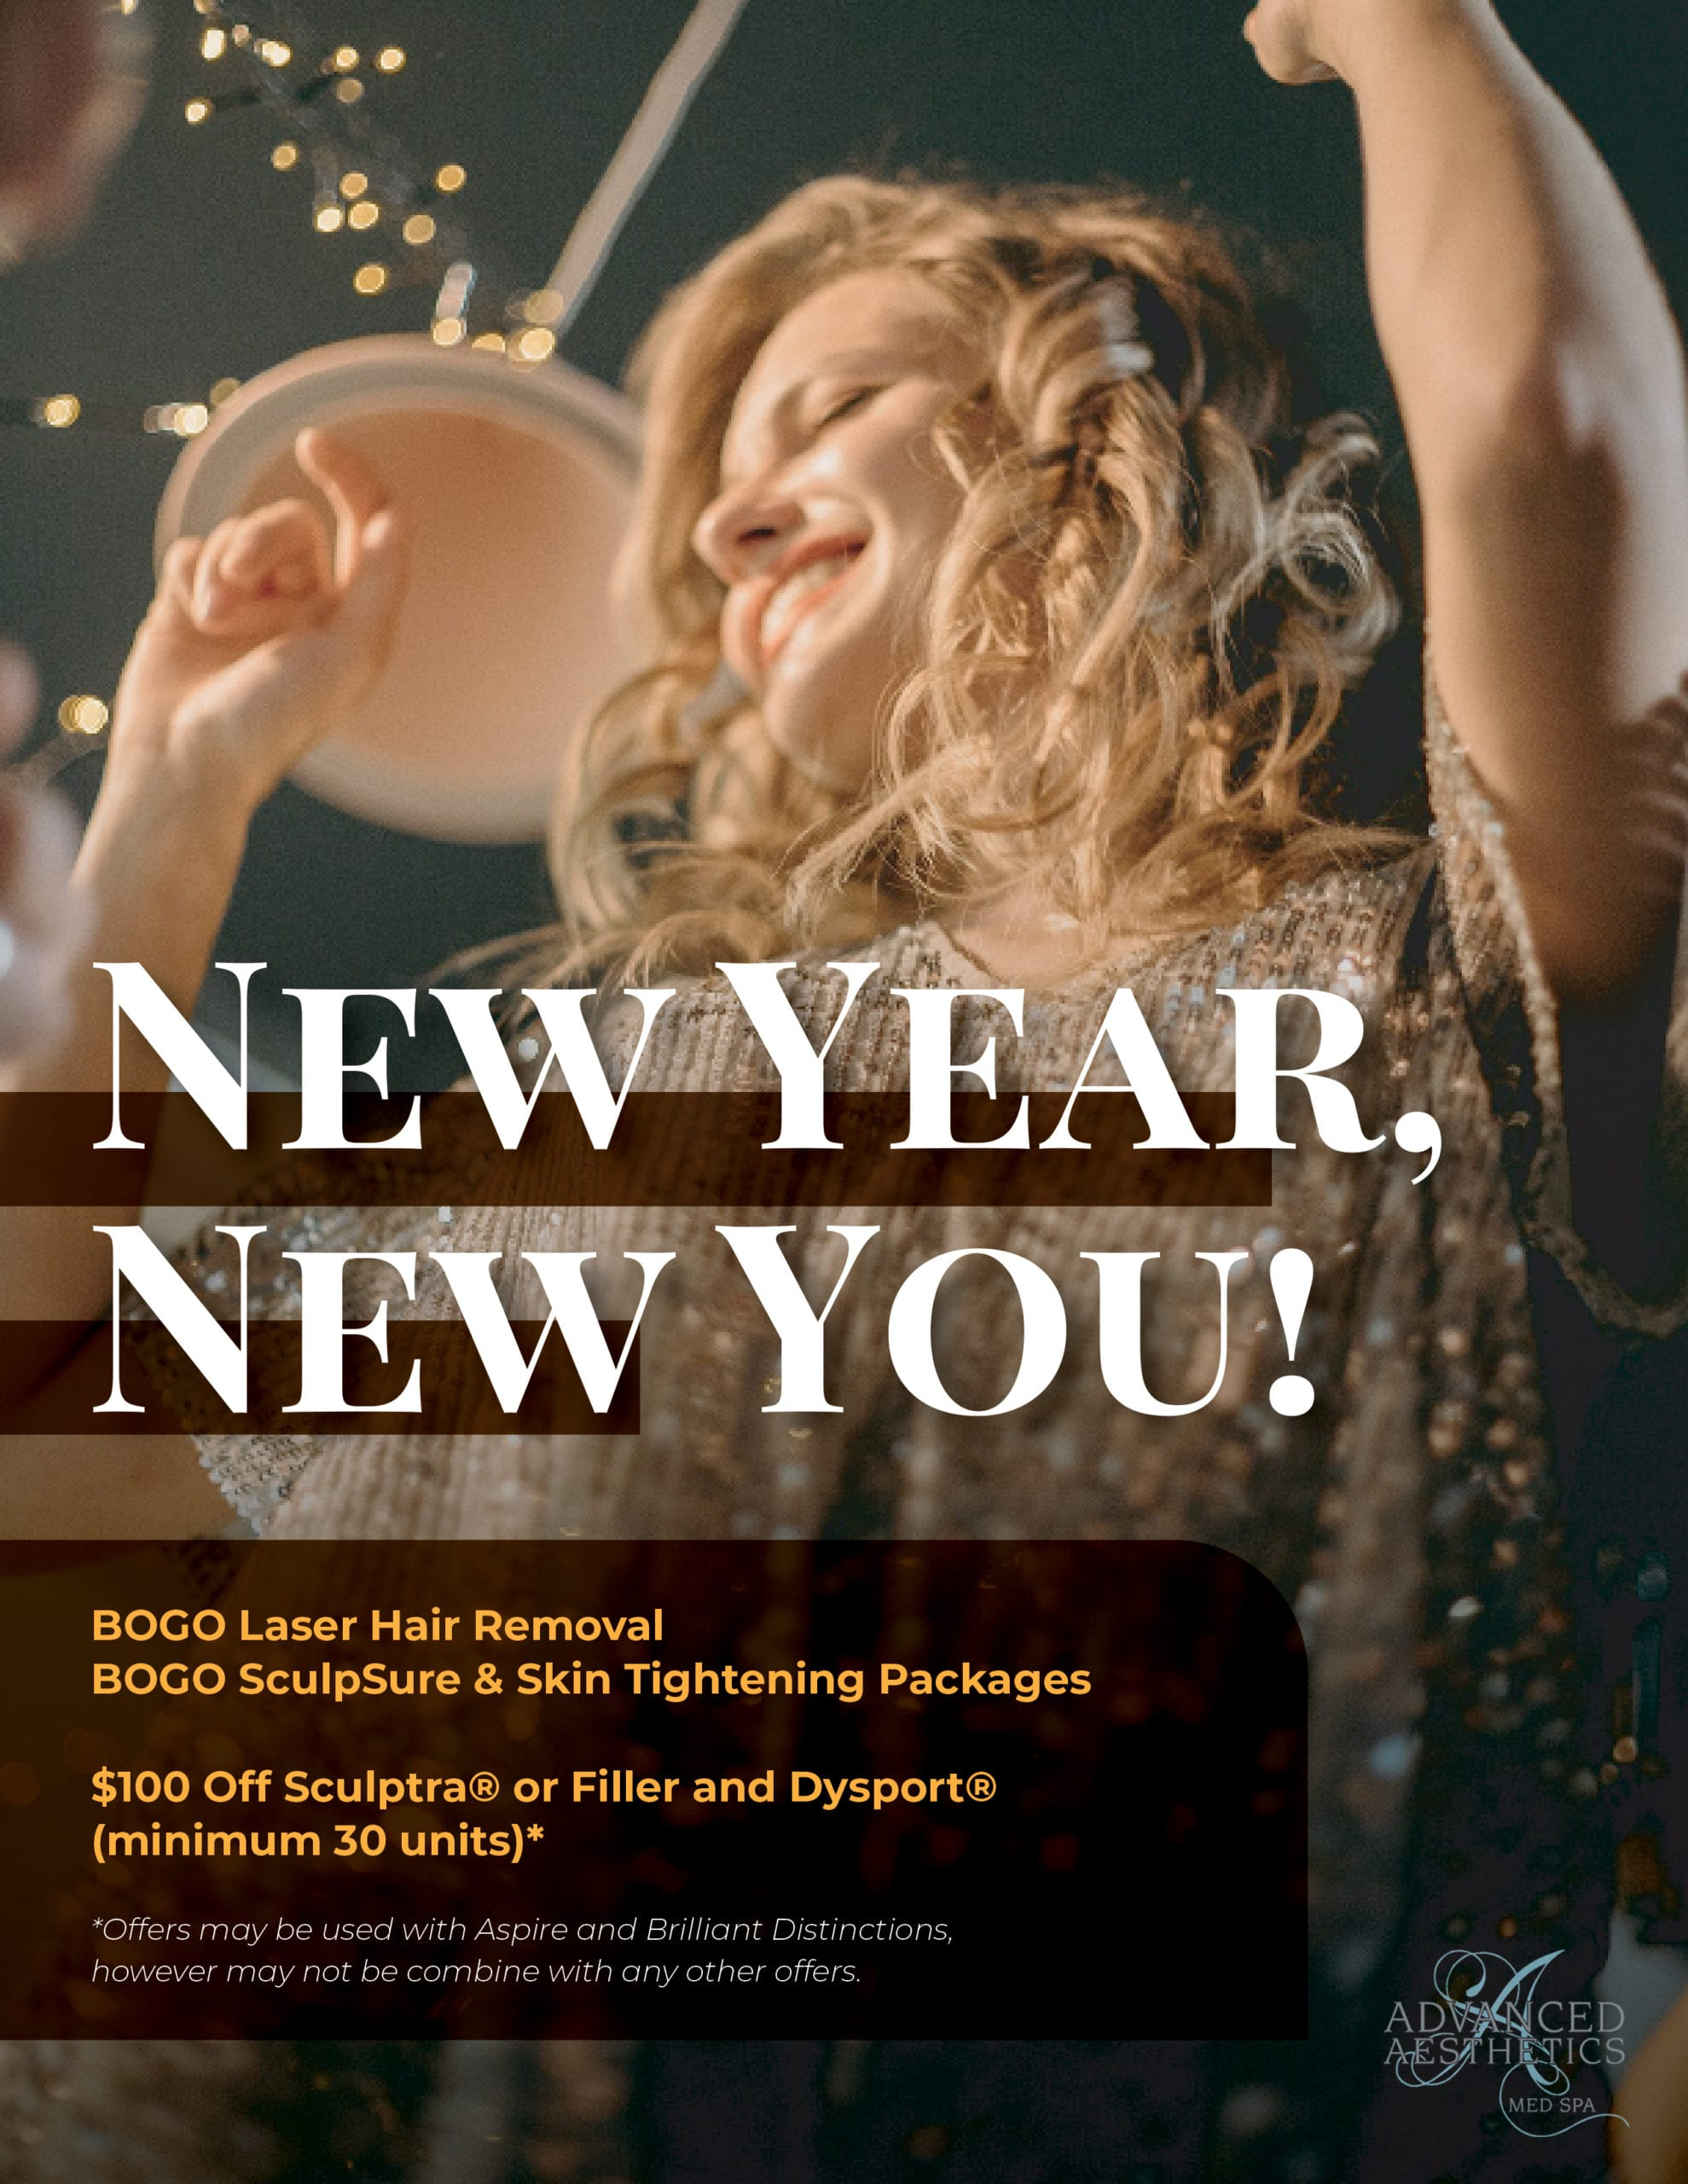 New Year, New You add for special packages